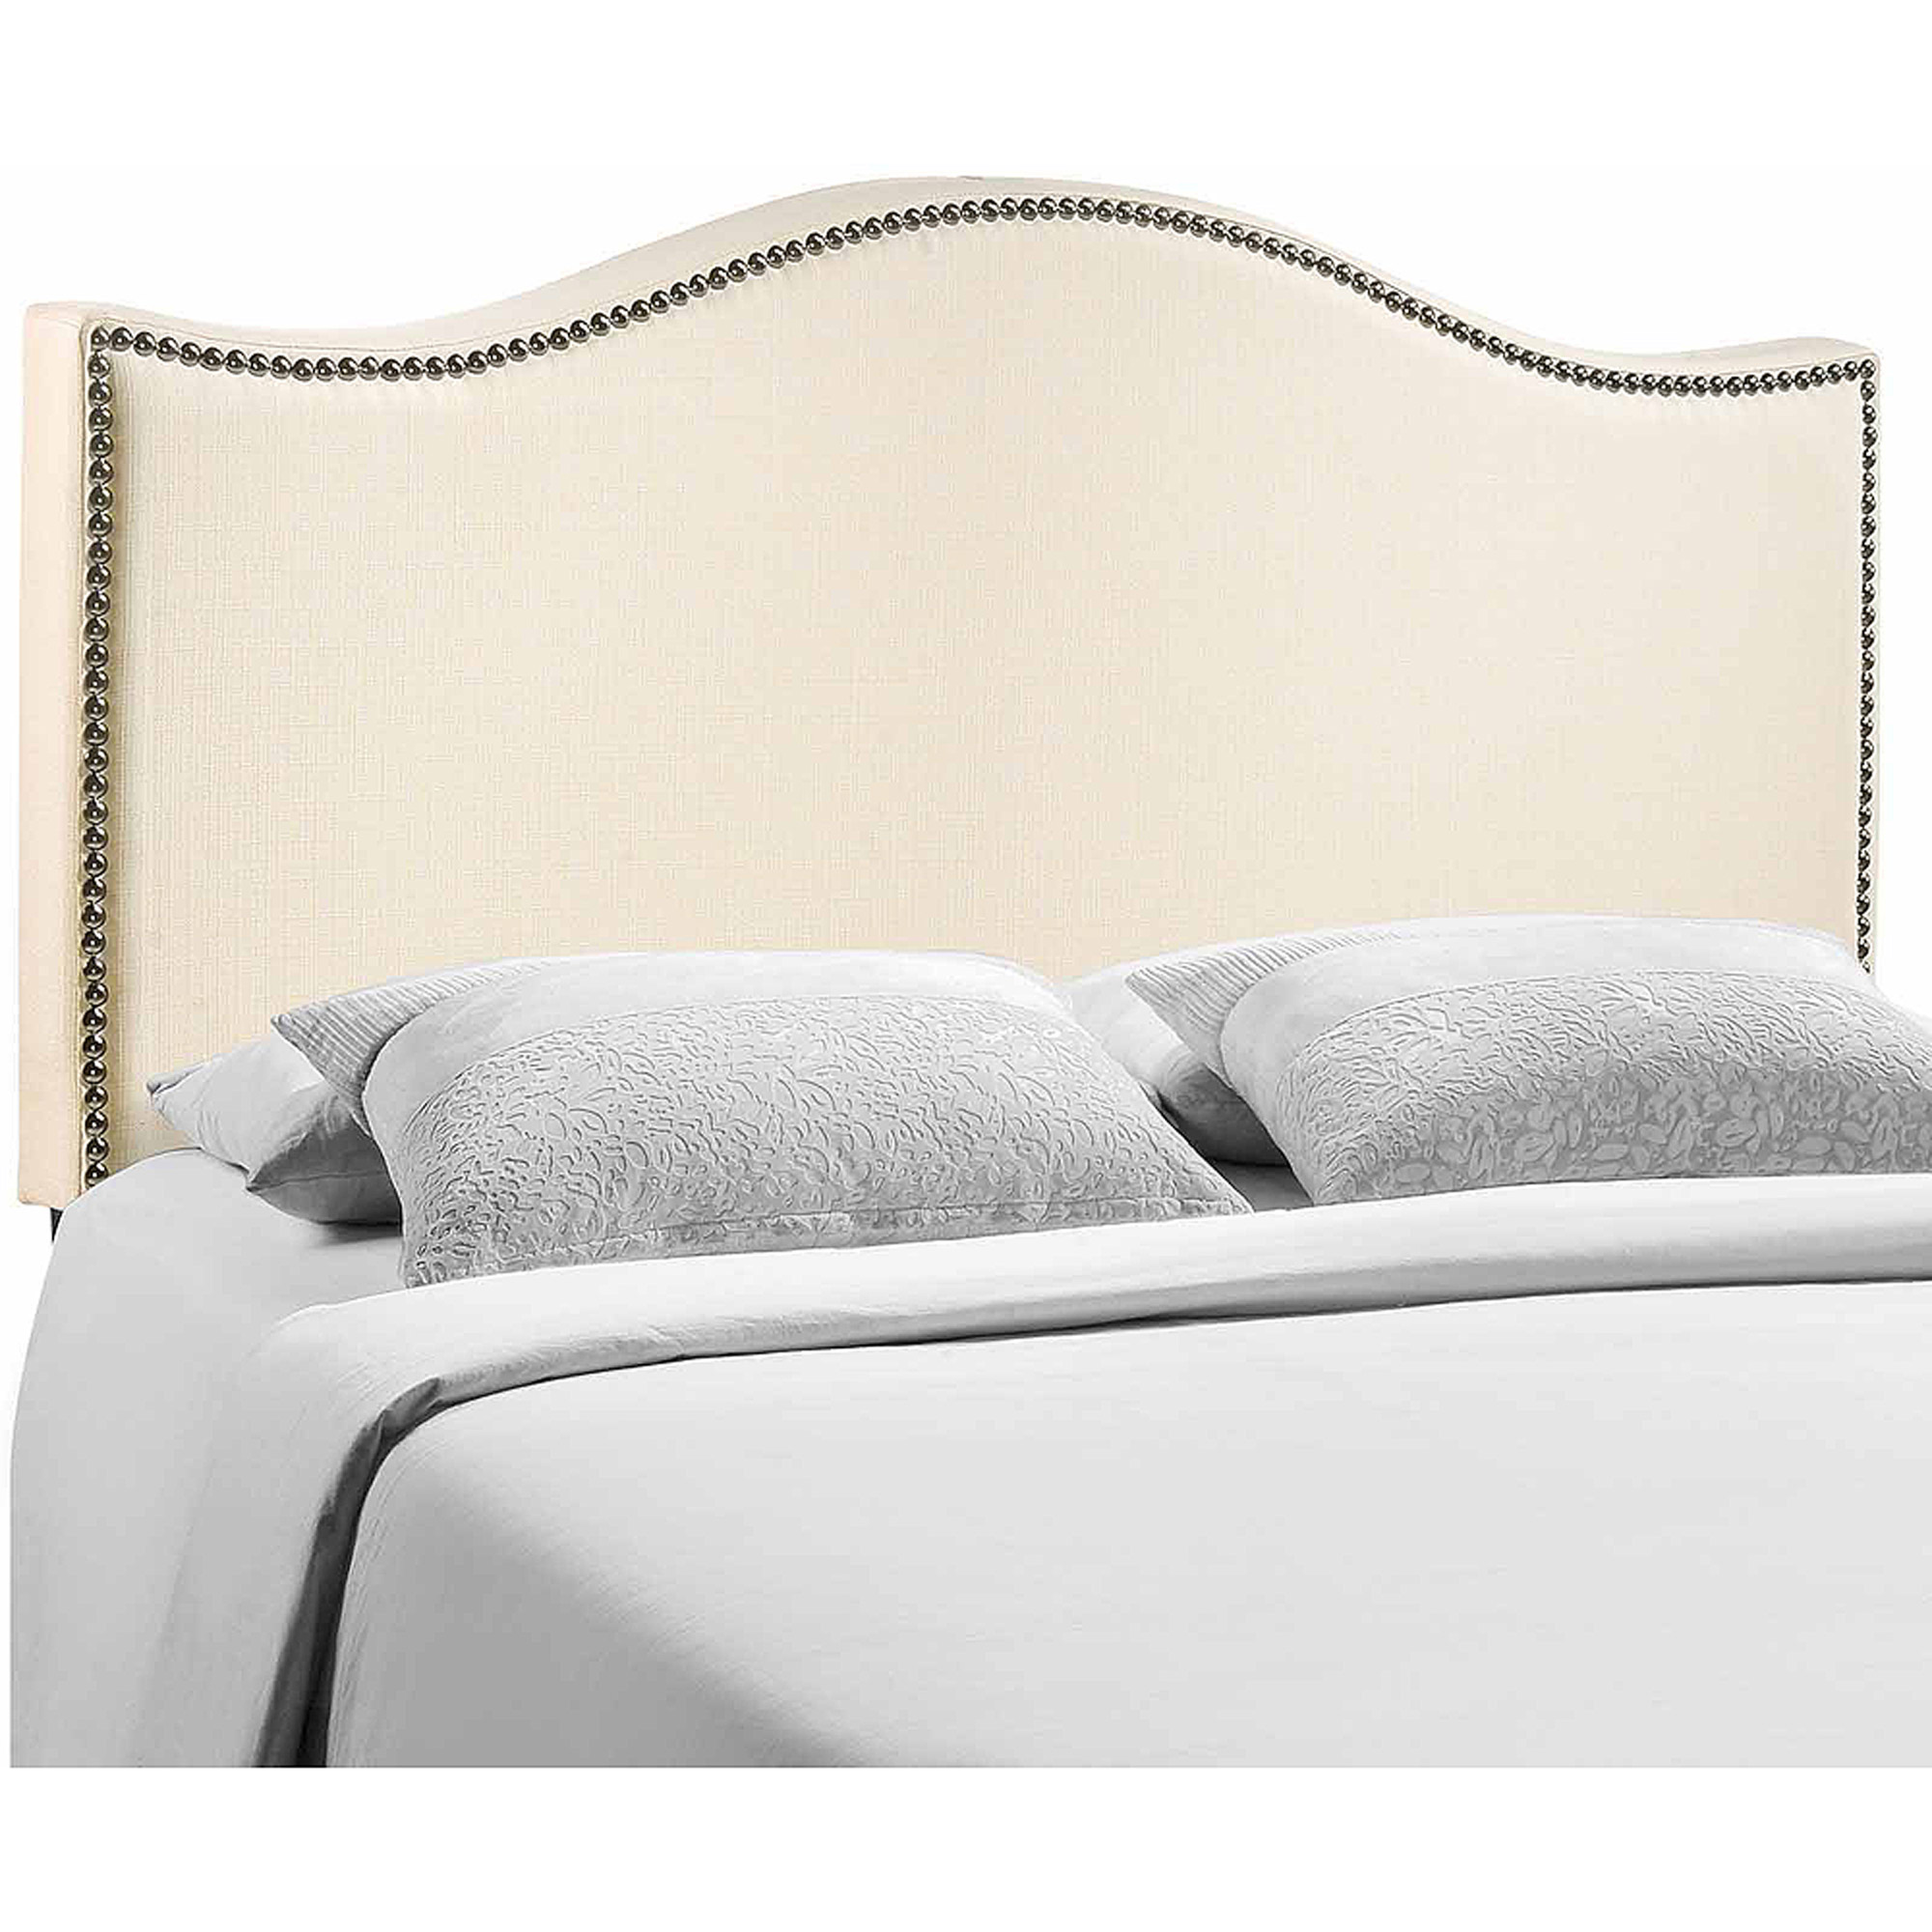 Inspiration better homes and gardens scalloped wingback tufted upholstered headboard  king/cal sand - oqmycgn